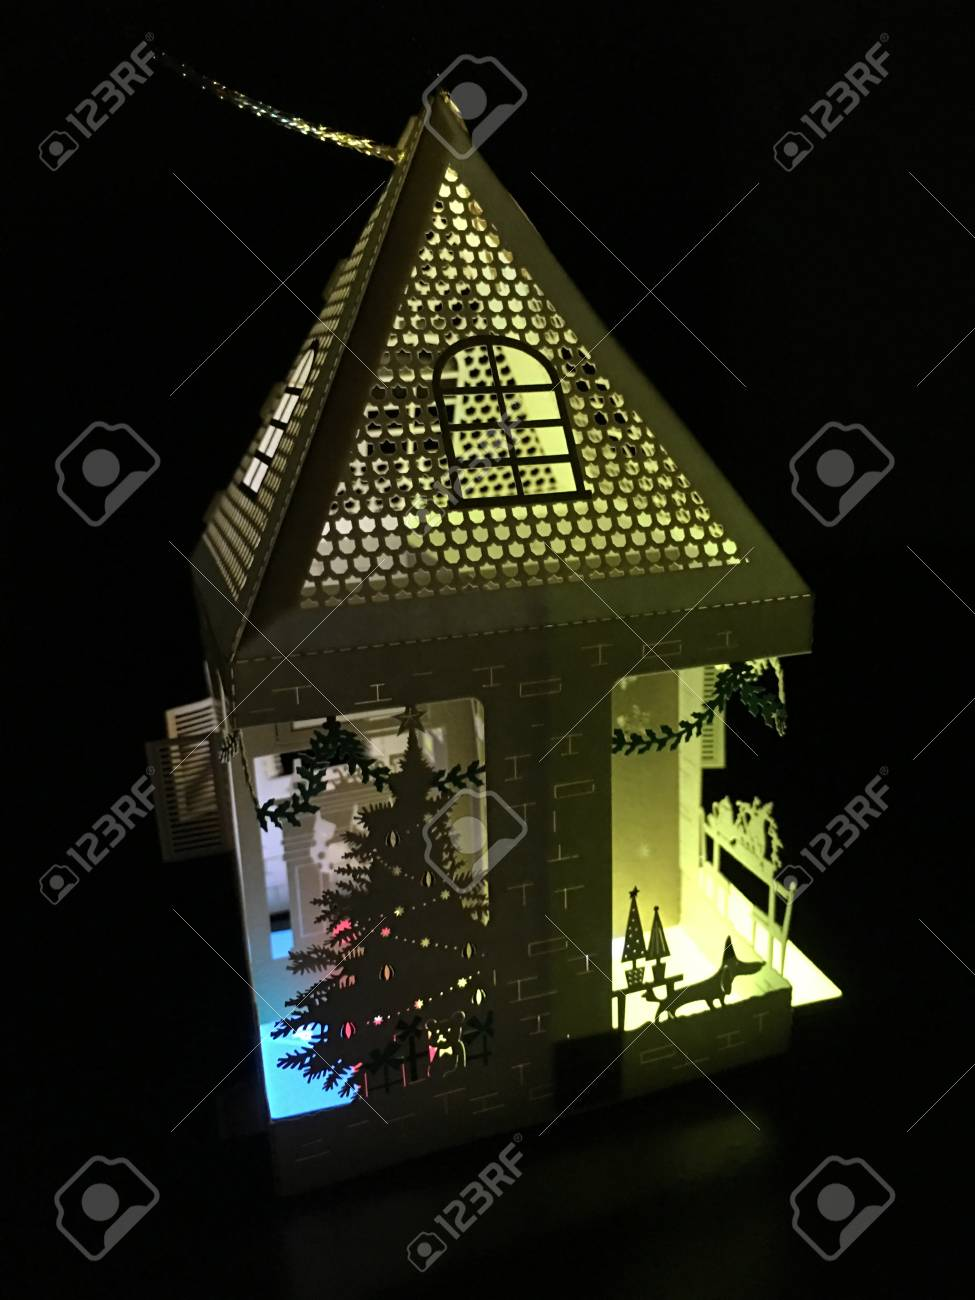 Lit up 3d holiday paper house with a christmas tree laser cut lit up 3d holiday paper house with a christmas tree laser cut ornament decoration greeting card m4hsunfo